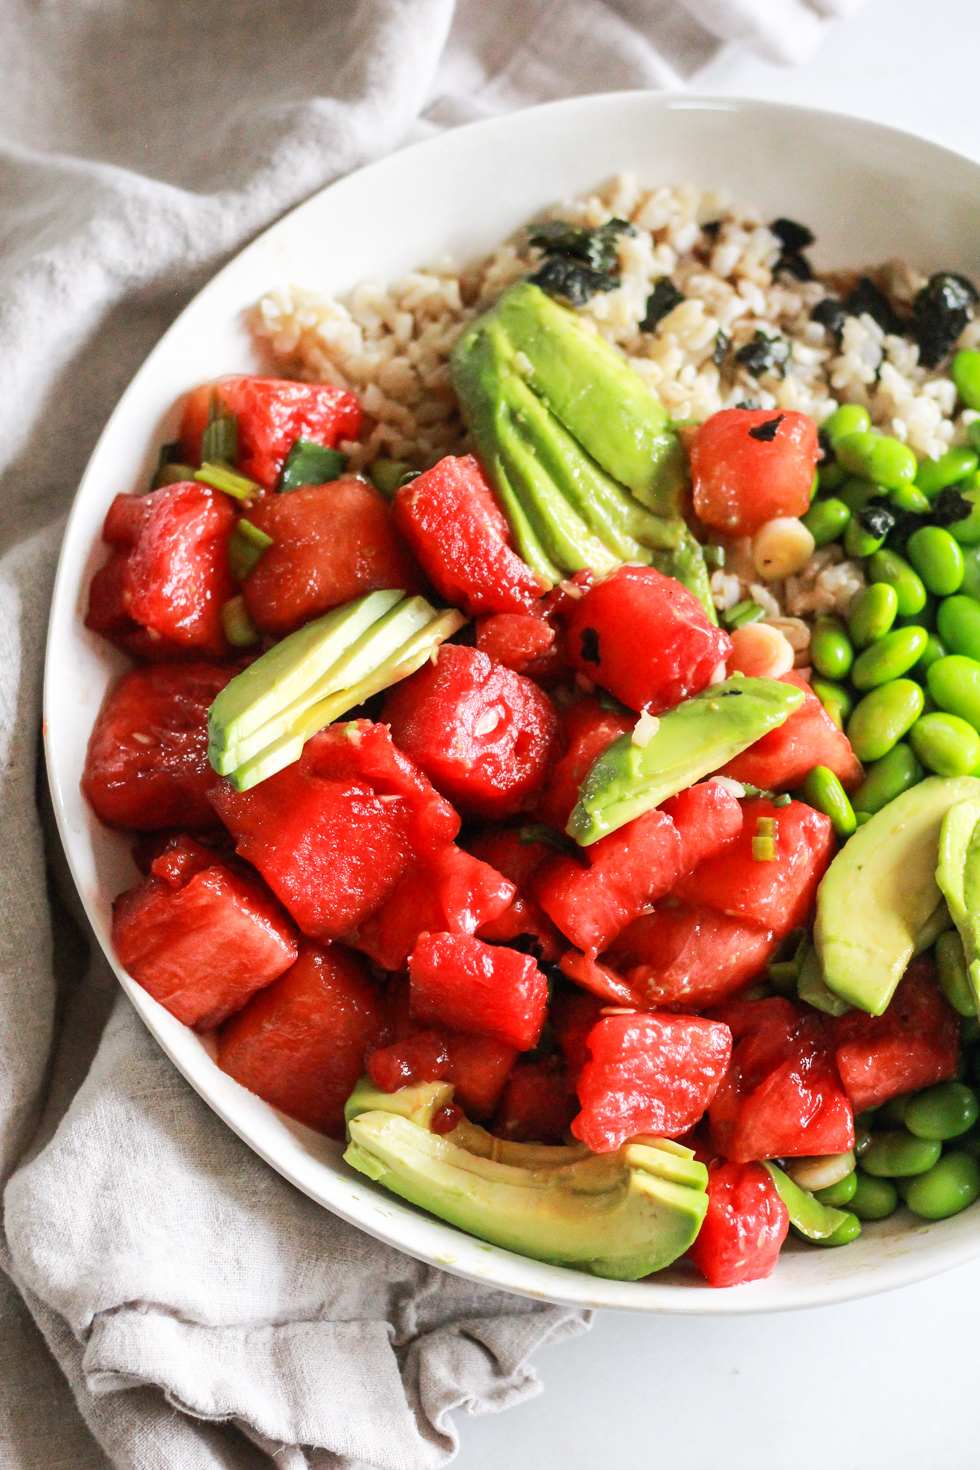 watermelon, avocado and edamame bowls with linen napkin